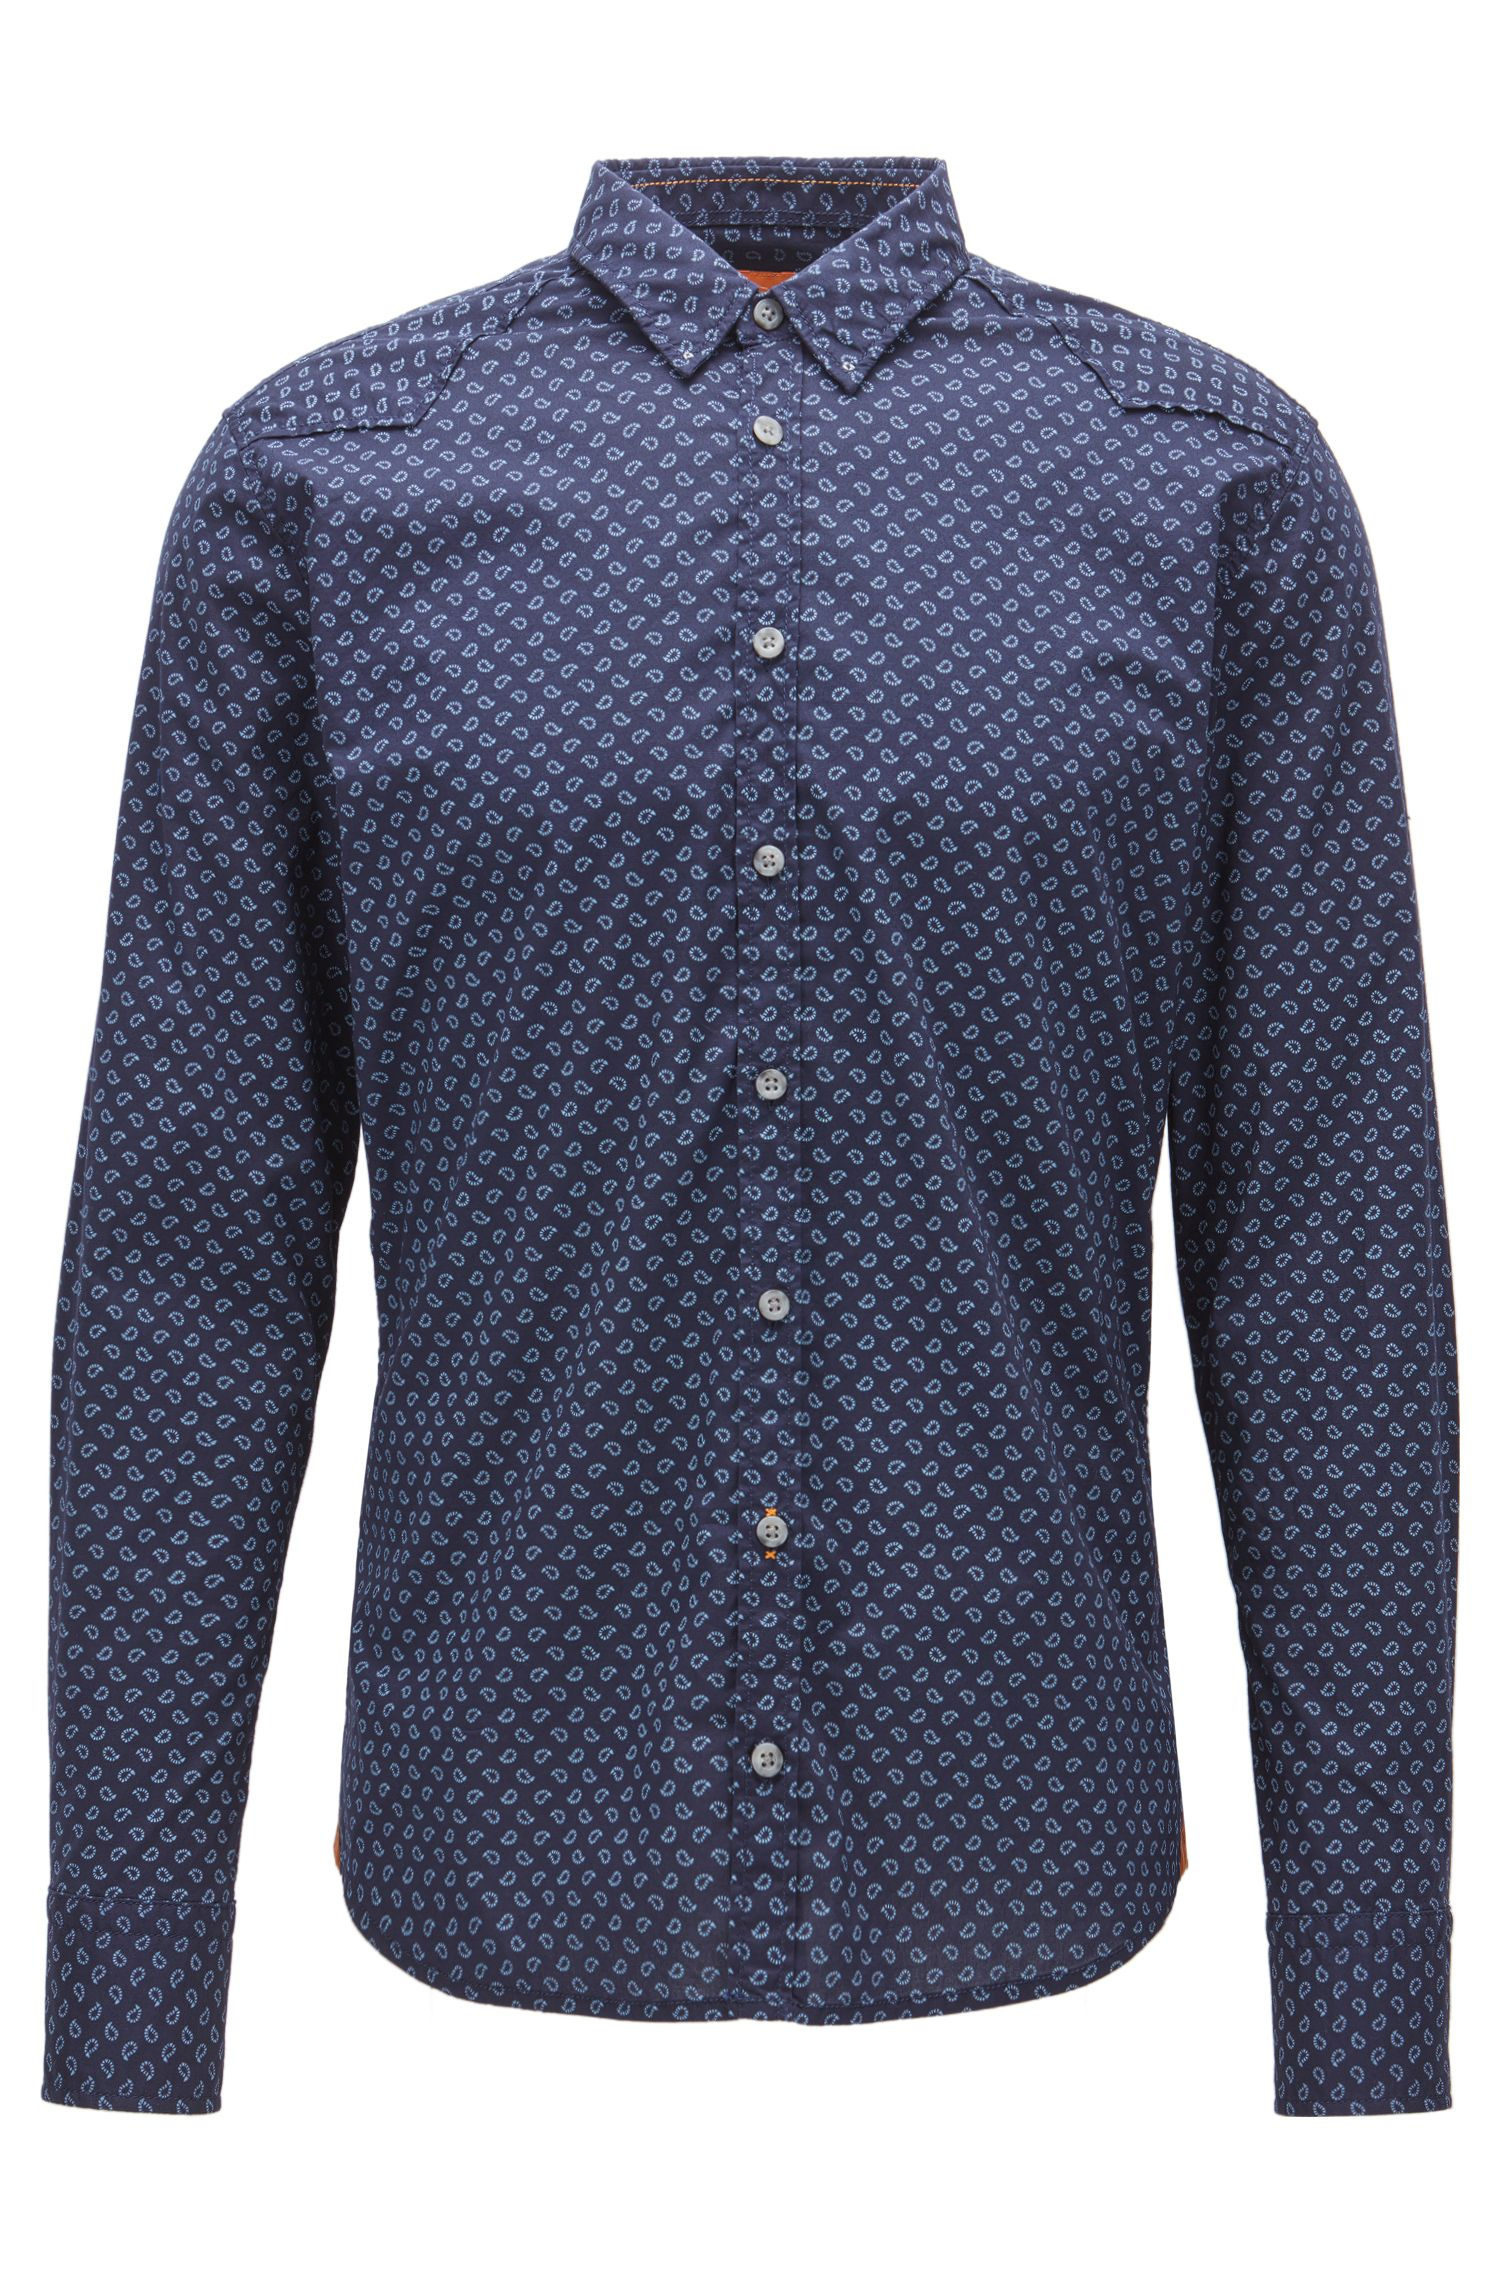 Extra-slim-fit shirt in printed cotton blend